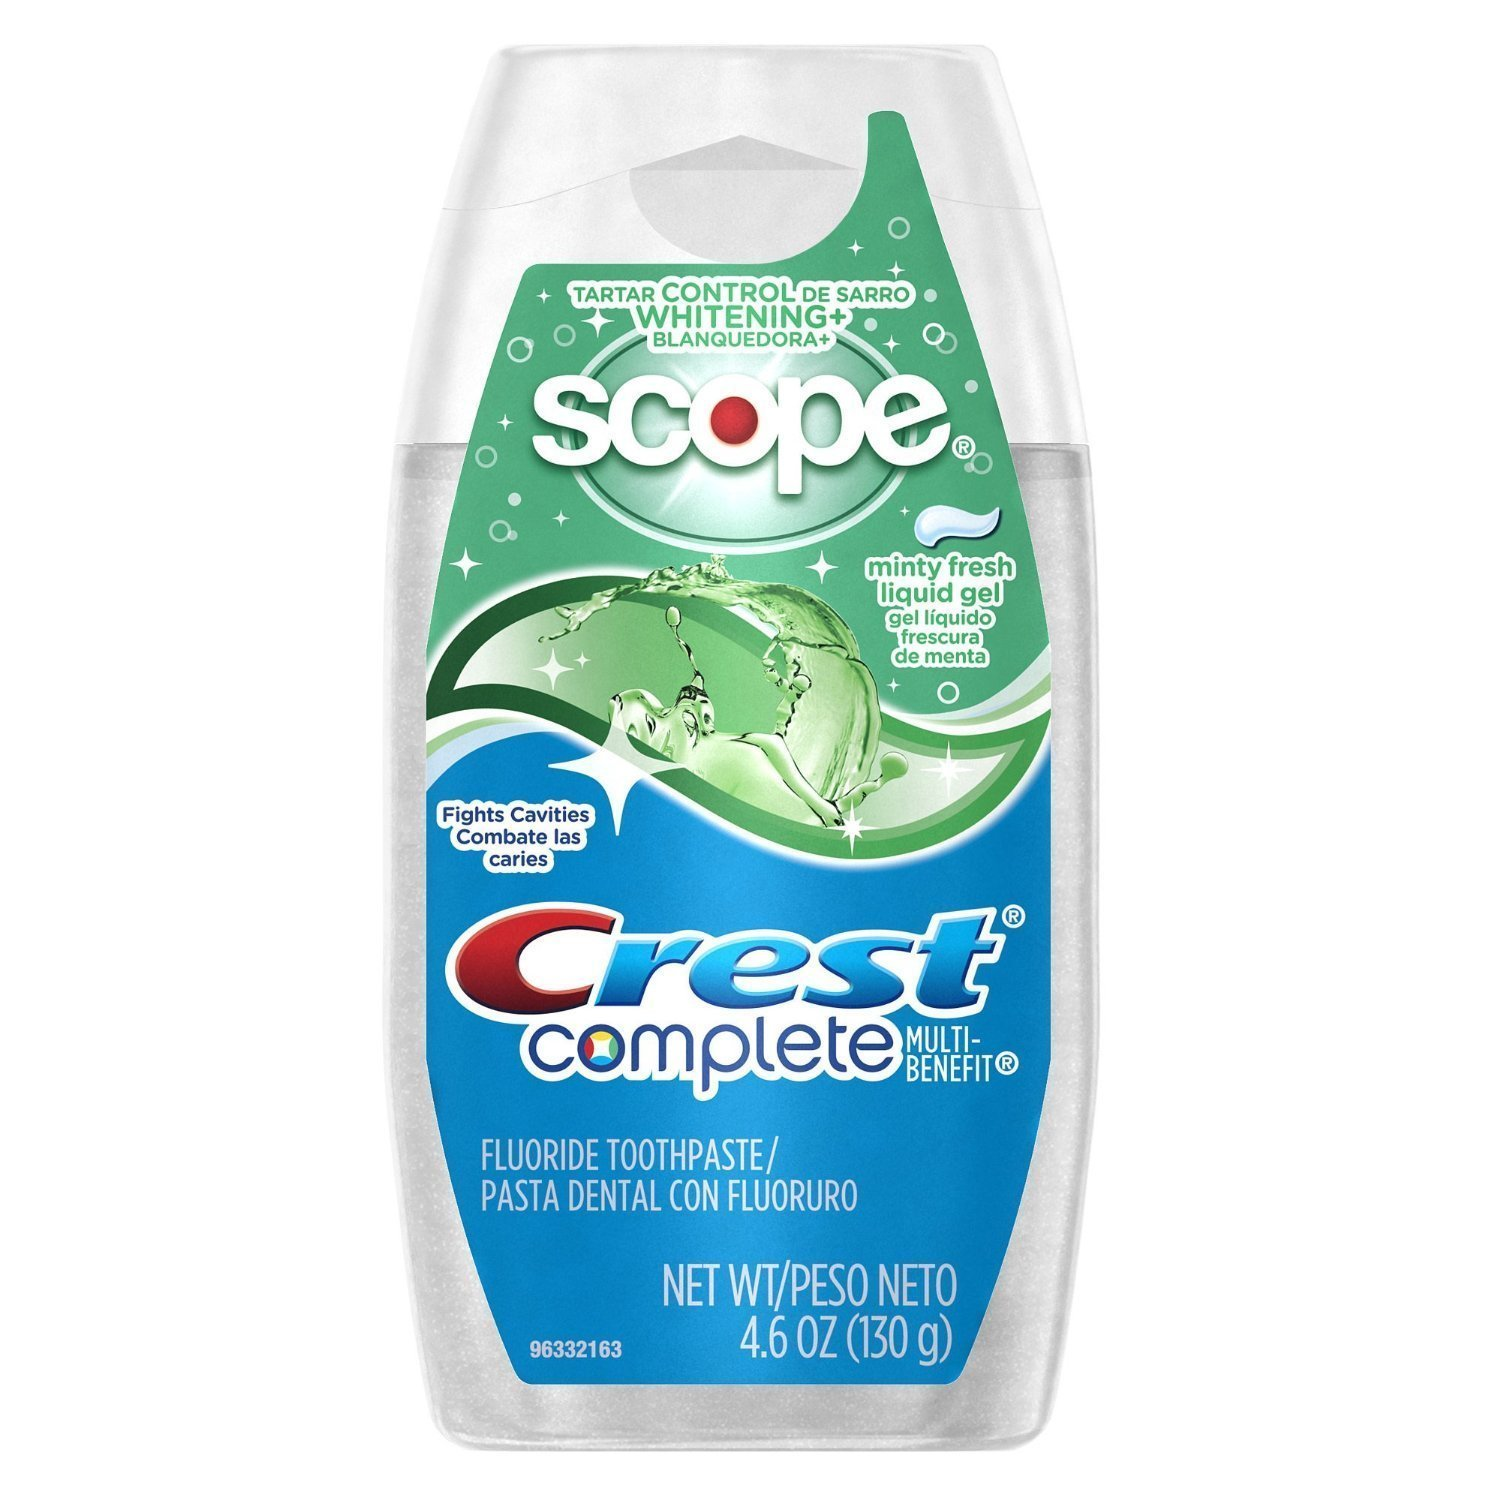 Crest Complete Tartar Control Whitening Plus Scope Liquid Gel - Minty Fresh 4.6 Ounces (Pack of 3)